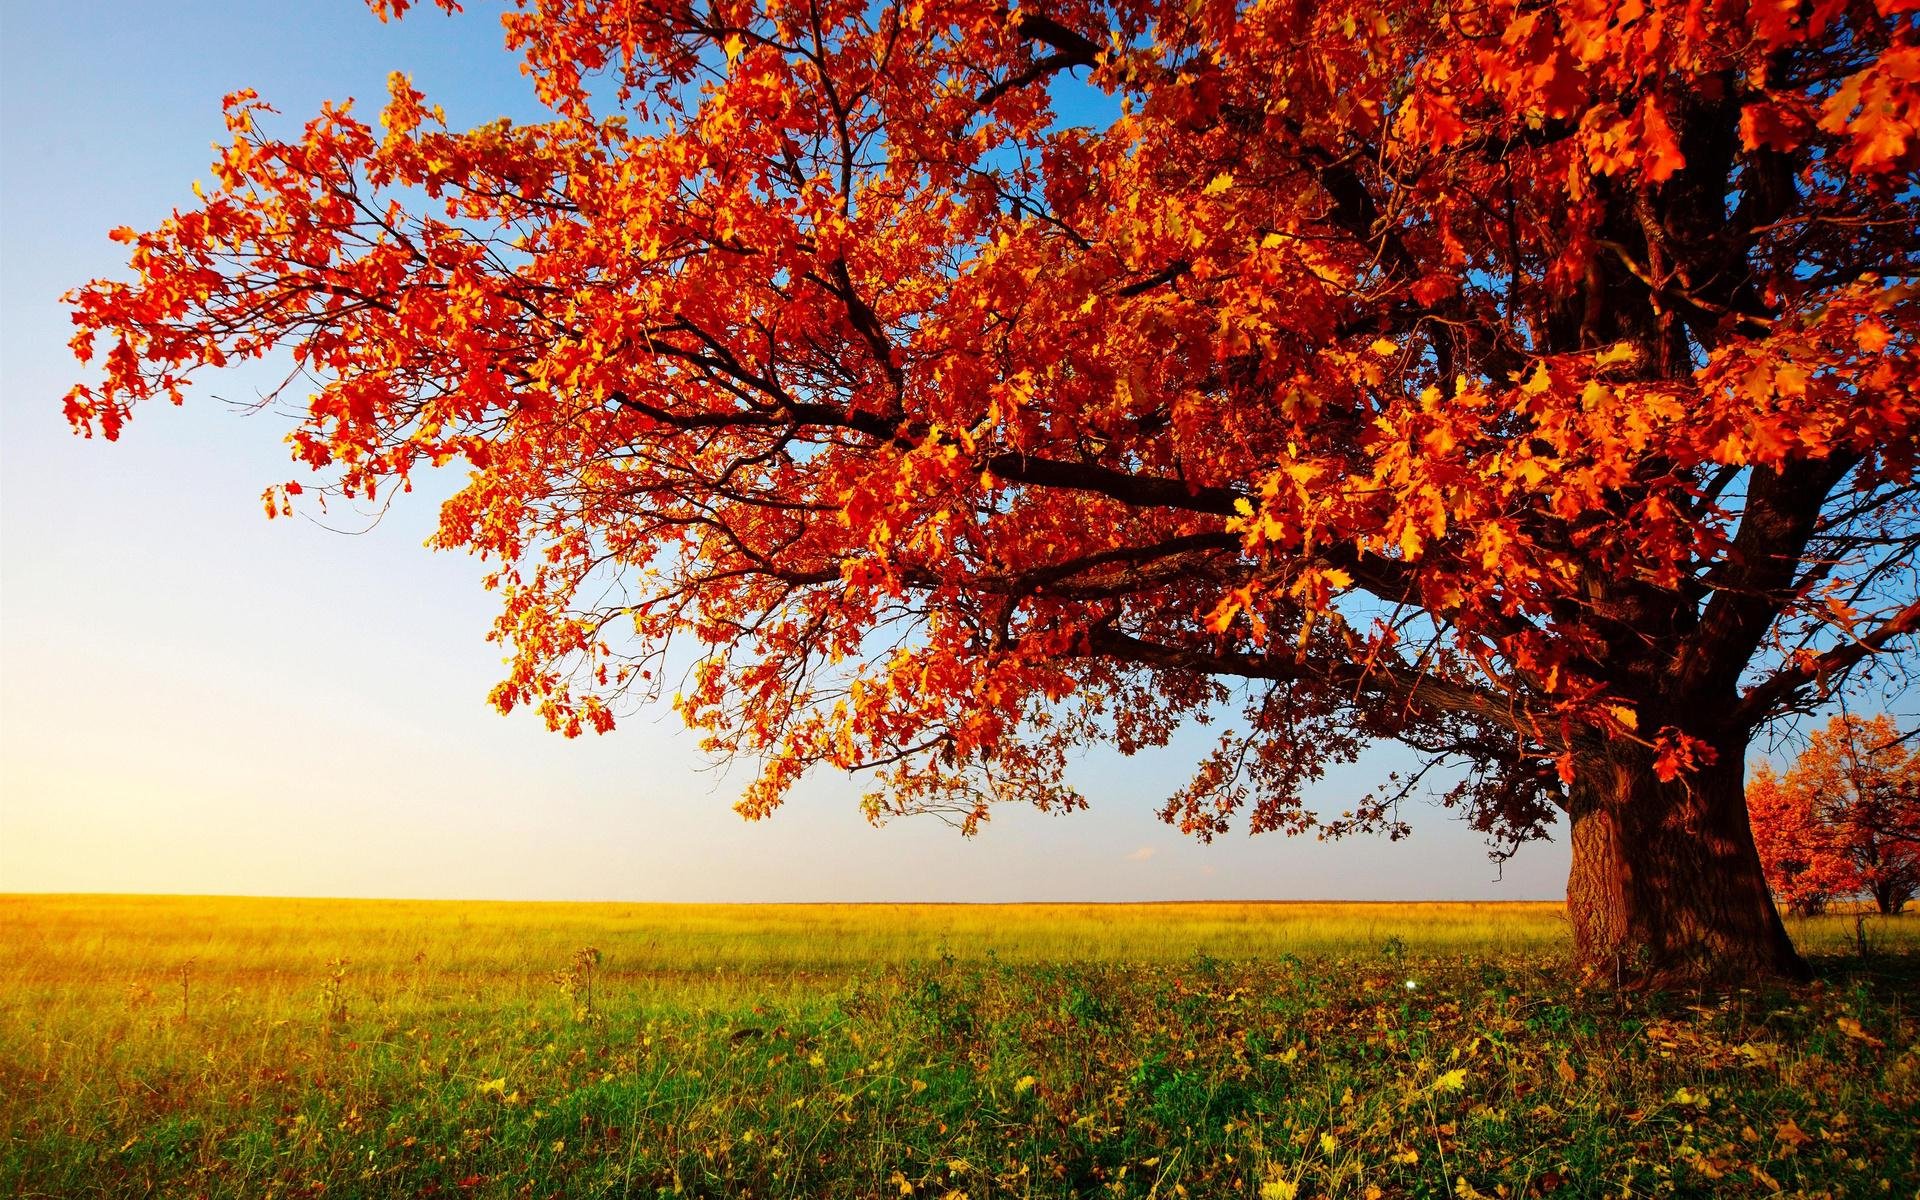 HD Autumn Tree Landscape Images Wallpaper | Download Free - 144244